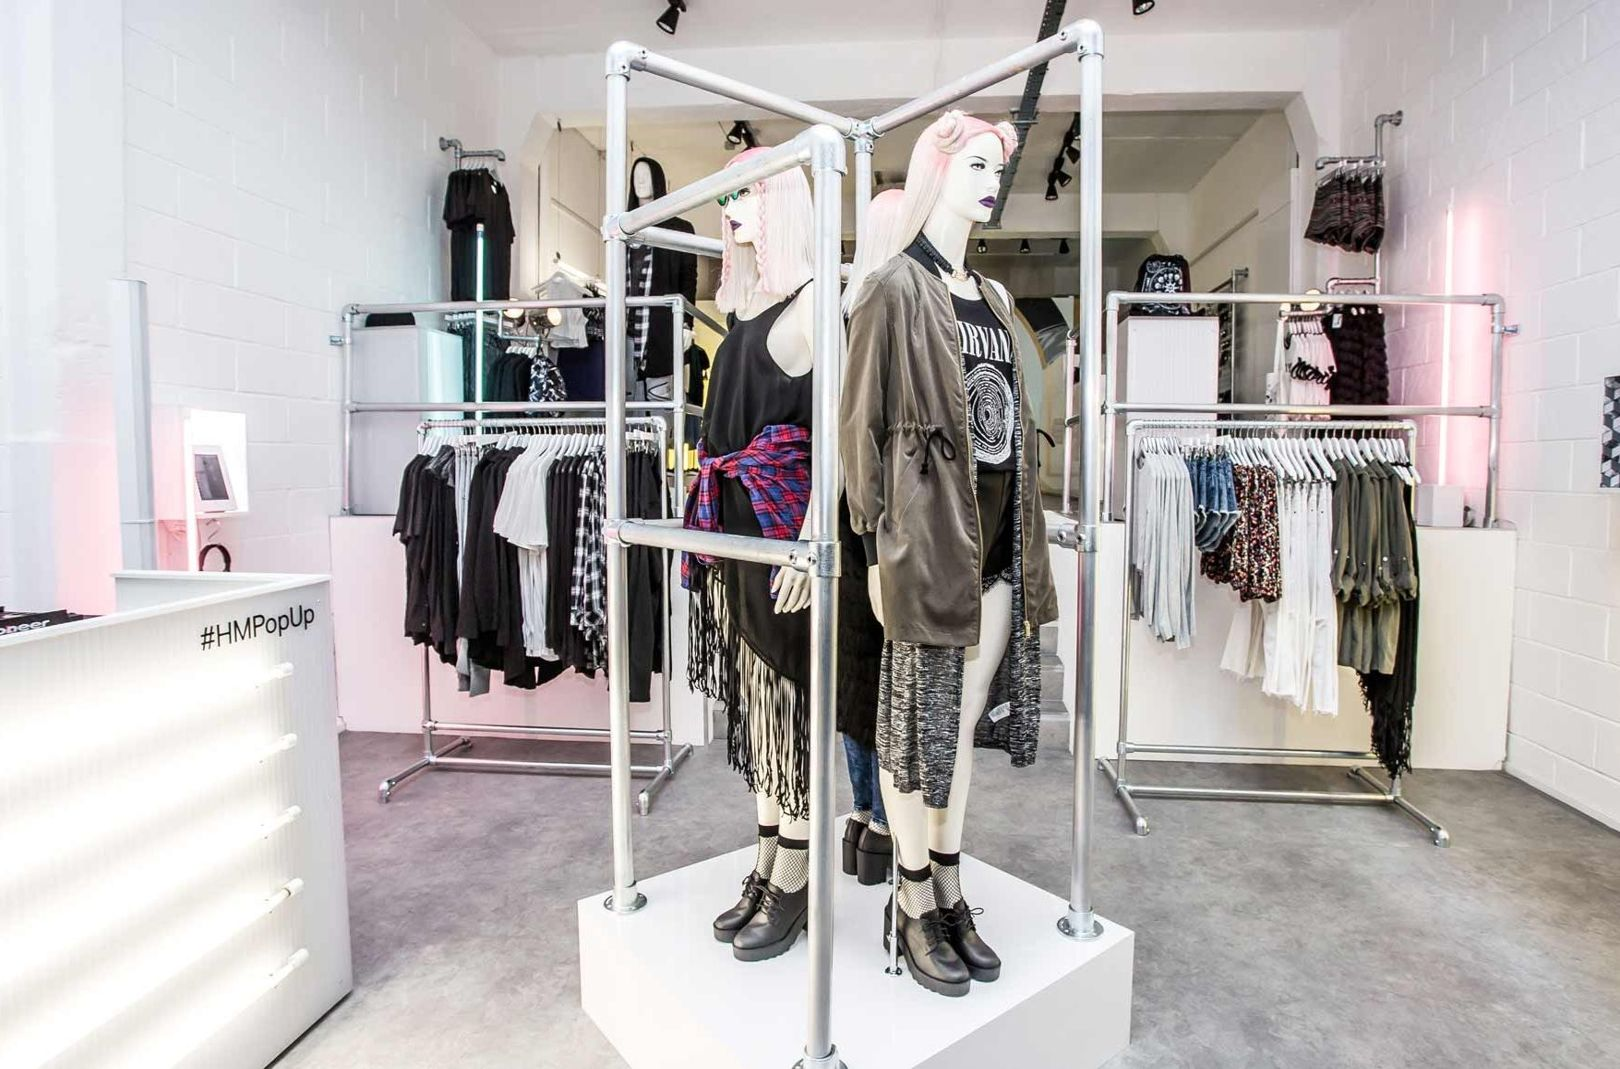 H&M's Brick Lane DIVIDED pop up store was created with an industrial vibe, with a separate music area for customers to listen to curated playlists. Image credit:  GQ